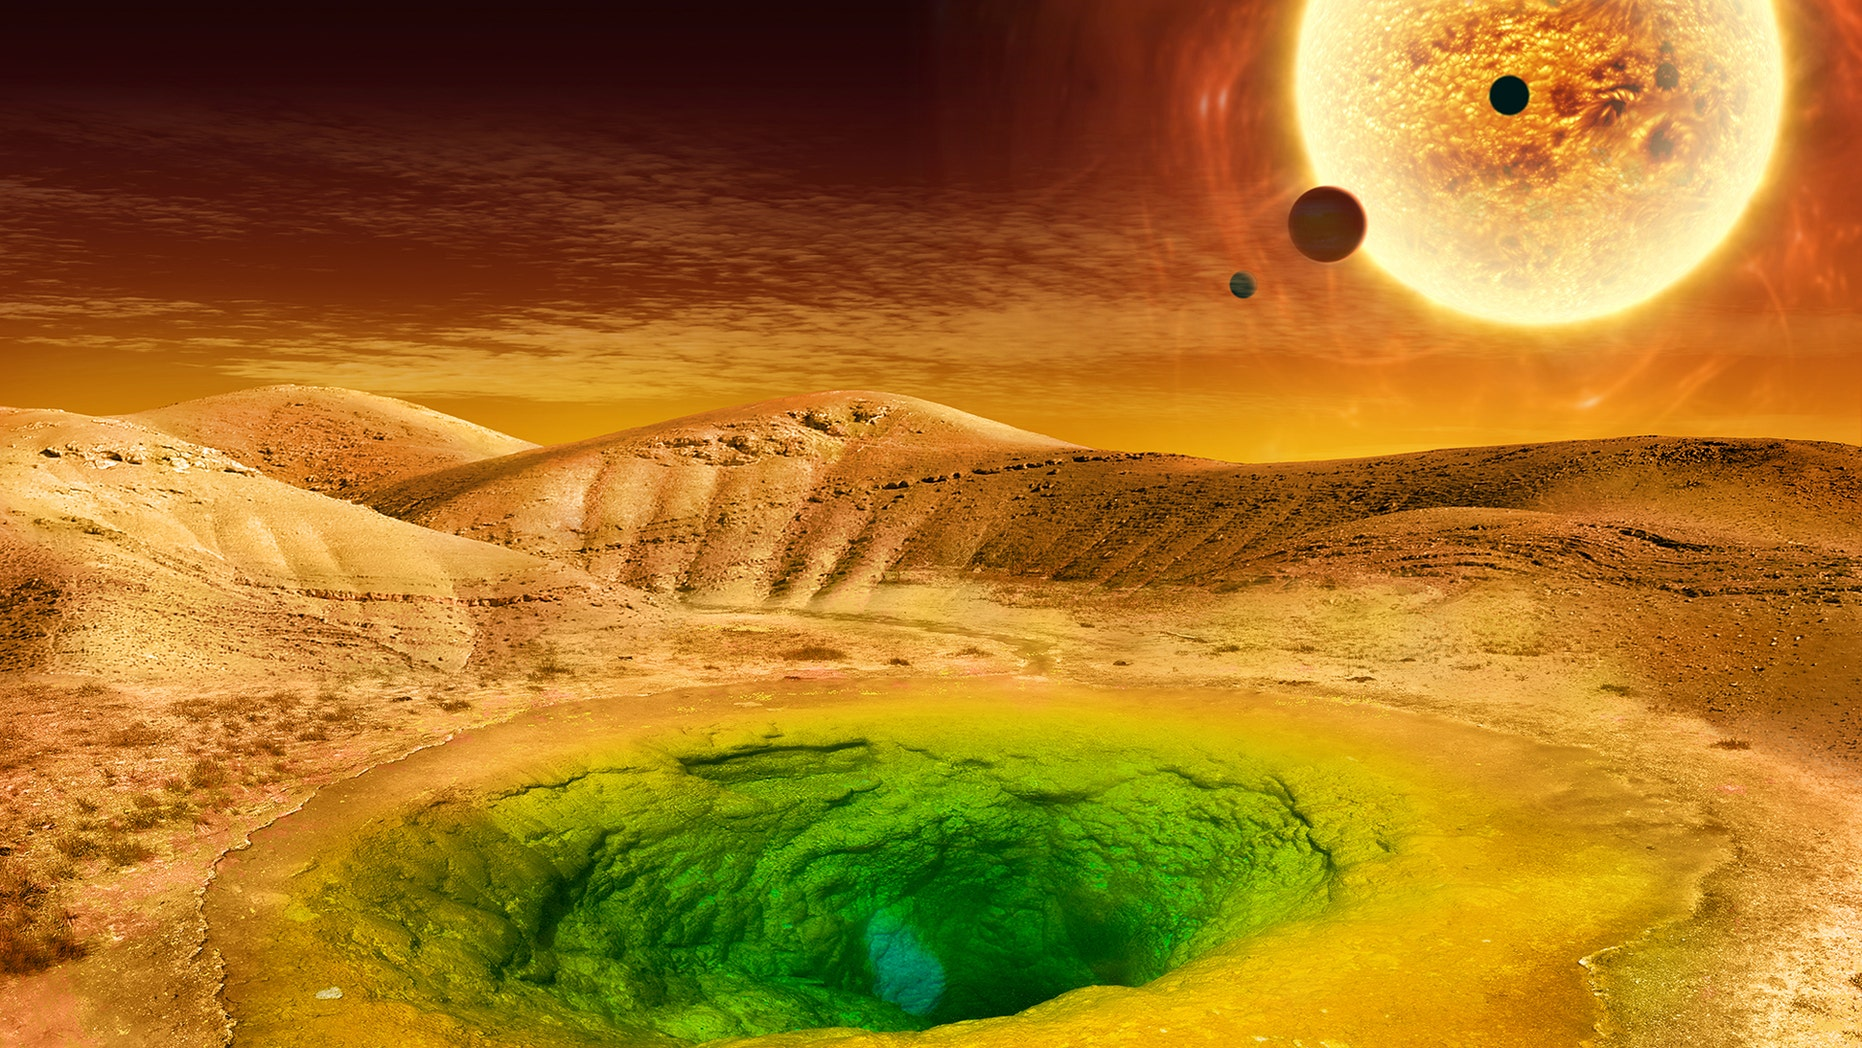 This image is an artist's conception of what life could look like on the surface of a distant planet. (Credit: NASA)